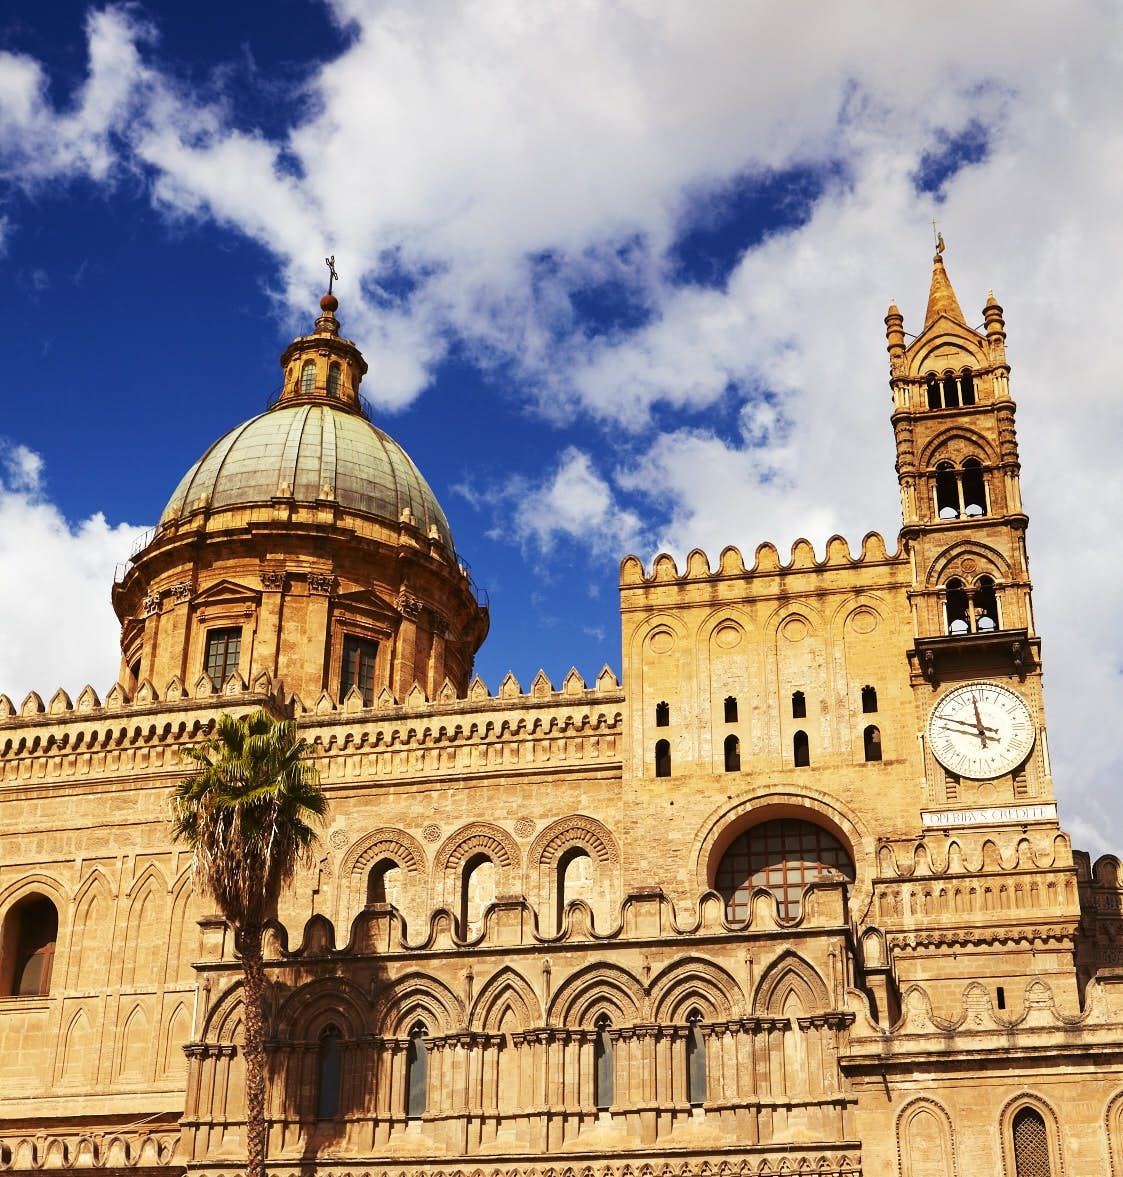 Studio La Rosa Palermo top things to do in palermo, italy - lonely planet